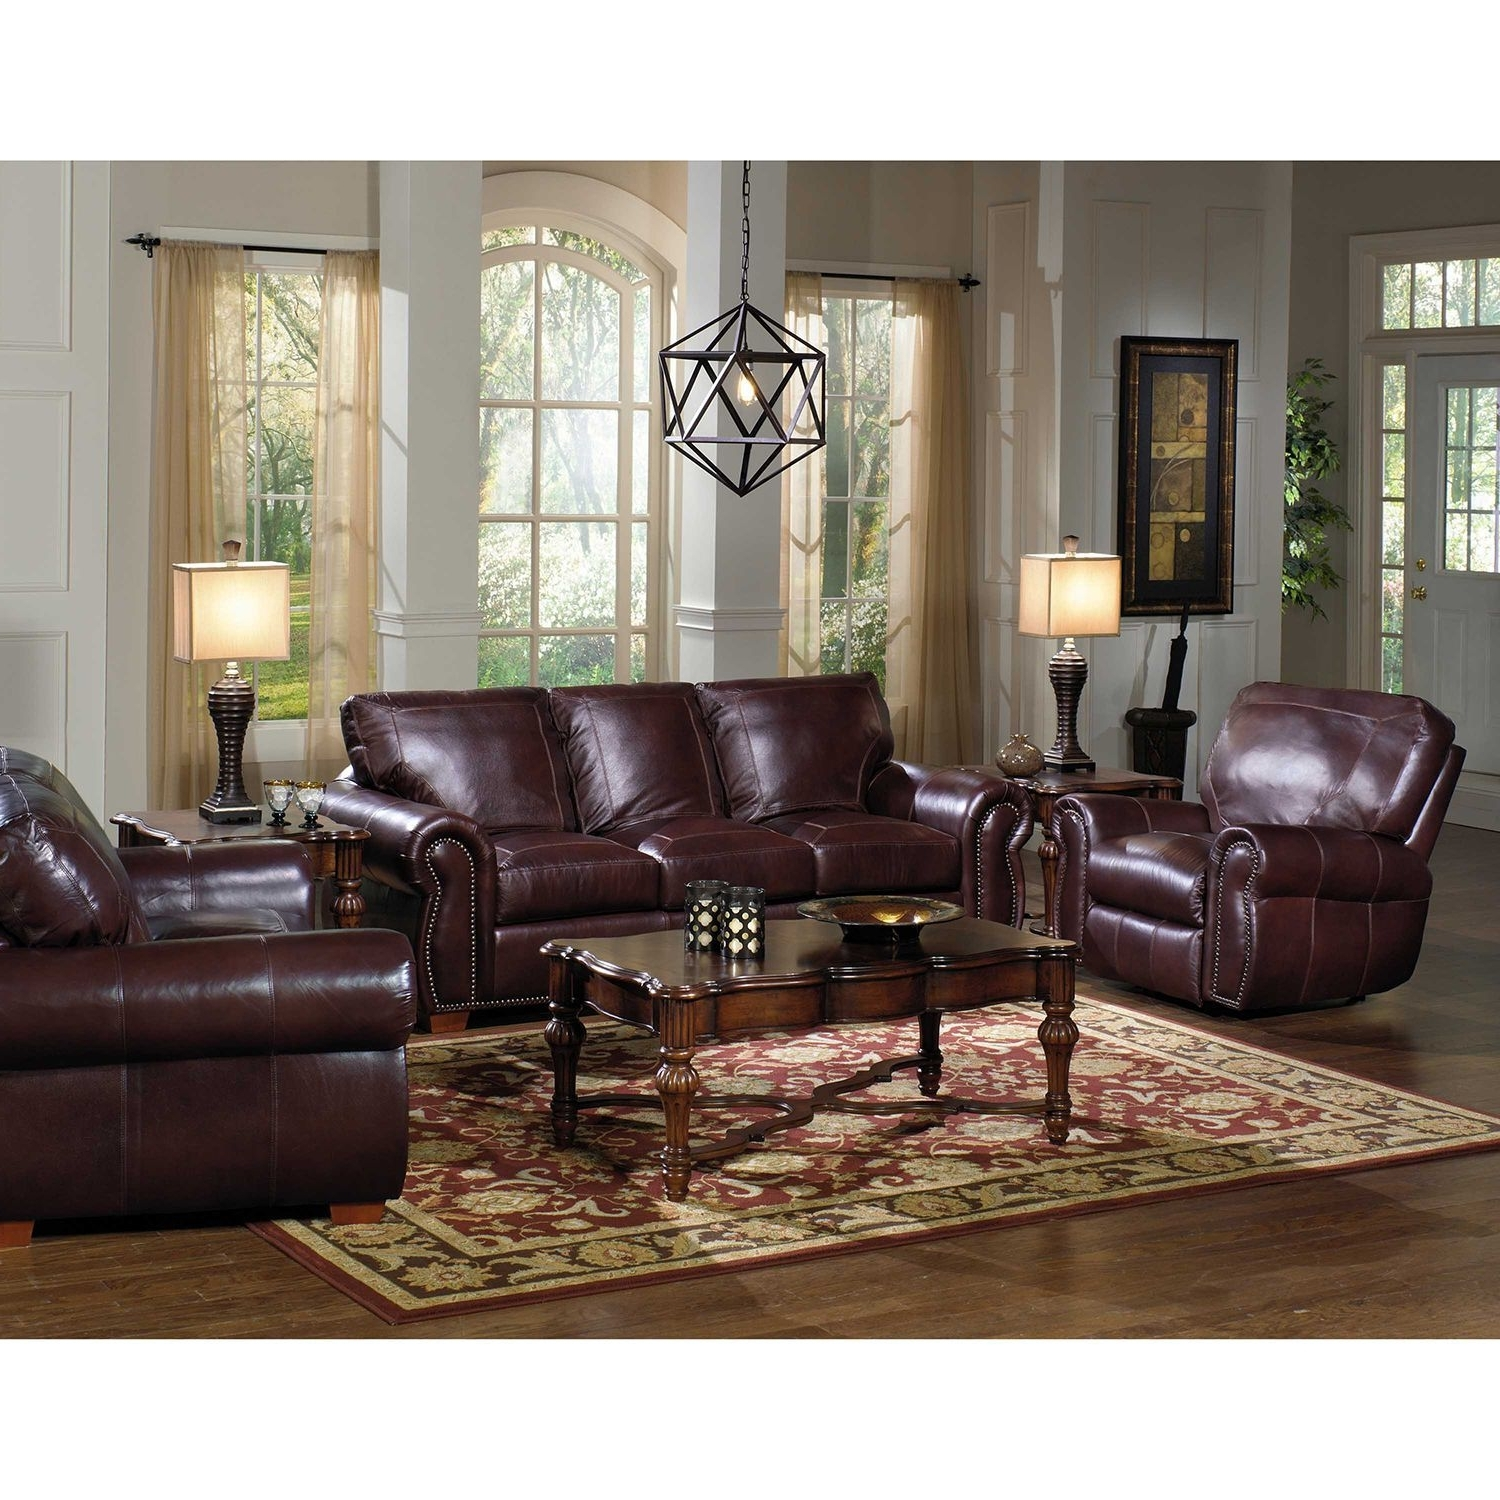 Kingston Top Grain Leather Sofa, Loveseat And Recliner Living Room Within Widely Used Sams Club Sectional Sofas (View 6 of 15)